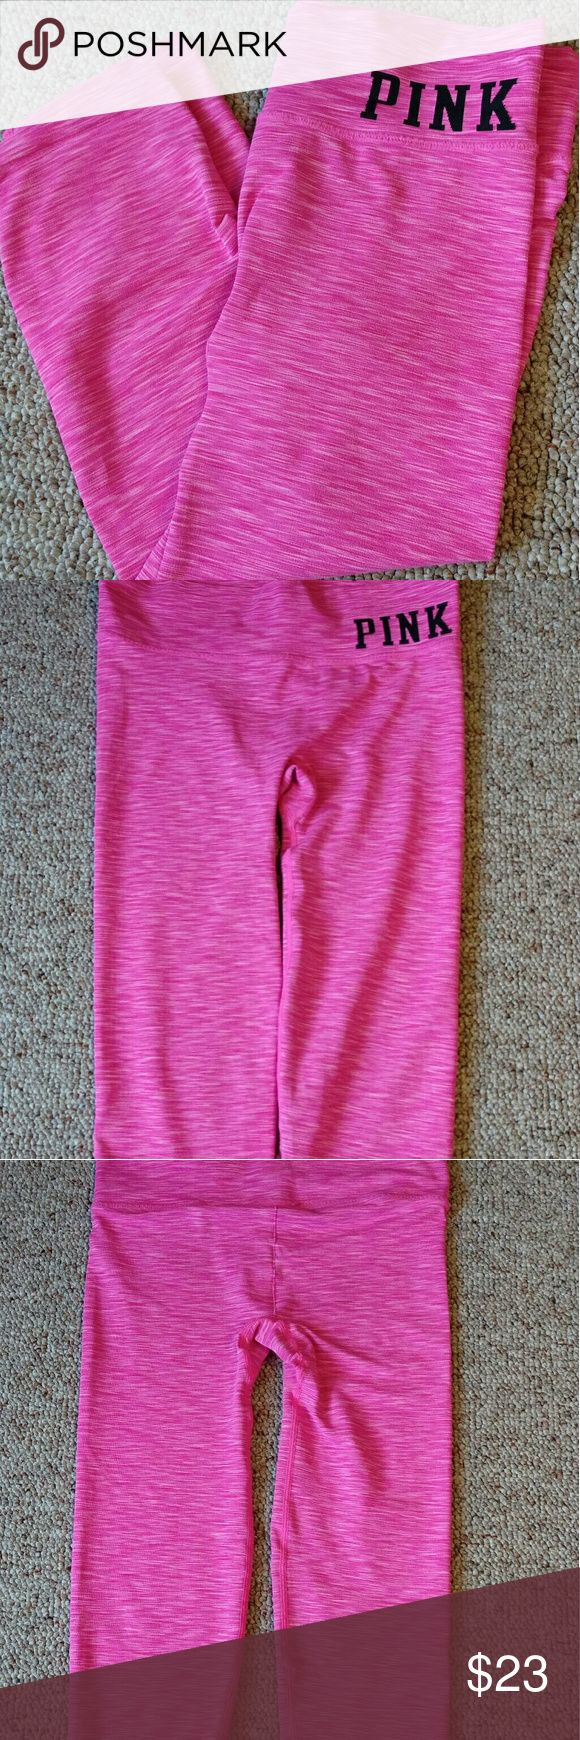 PINK Yoga Capri's Excellent used condition. No holes. No stains. No pilling. Size XS. true to size. Please reference measurements.  Waist measures 13 inches Inseam 17 1/2 inches Width of hem 5 inches  ⛔Please make offers thru the OFFER TAB ONLY. I DO NOT negotiable on the listing.⛔  ❌No trades ❌No modeling ❌No holds 47 PINK Victoria's Secret Pants Capris